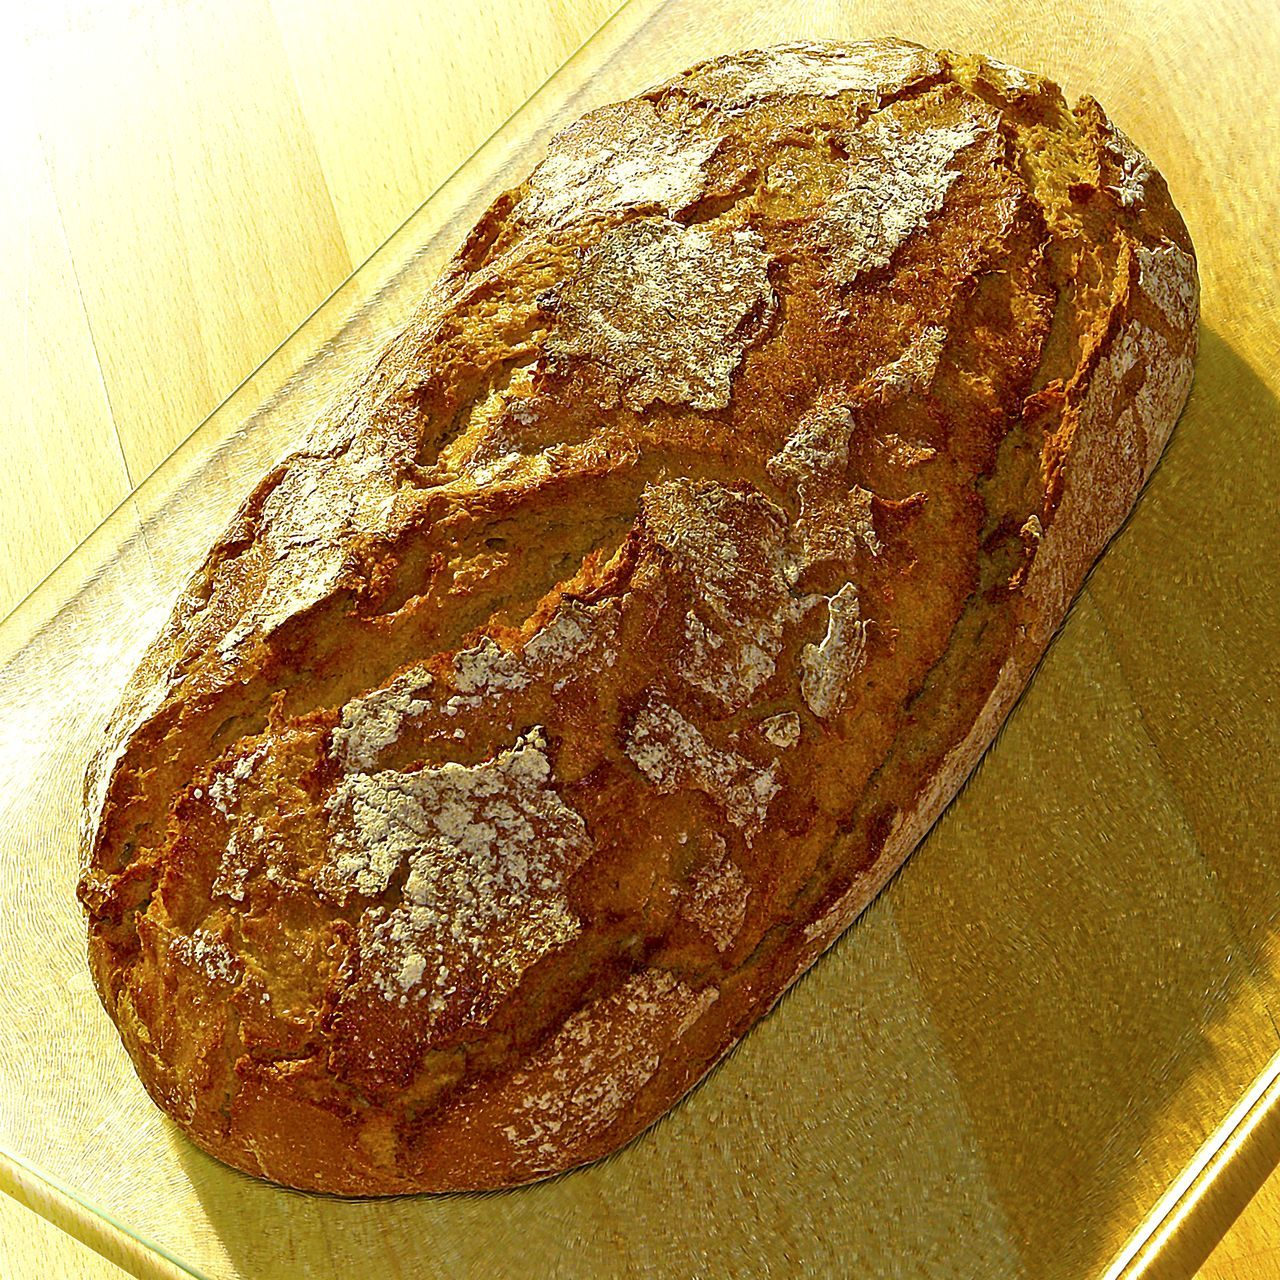 Bread Crusty Bread Day Food Fresh Freshly Baked Frisches Brot Knusprig Laib Brot Loaf Loaf Of Bread Mouthwatering Ready-to-eat Rich Crust Sonnig Sunny☀